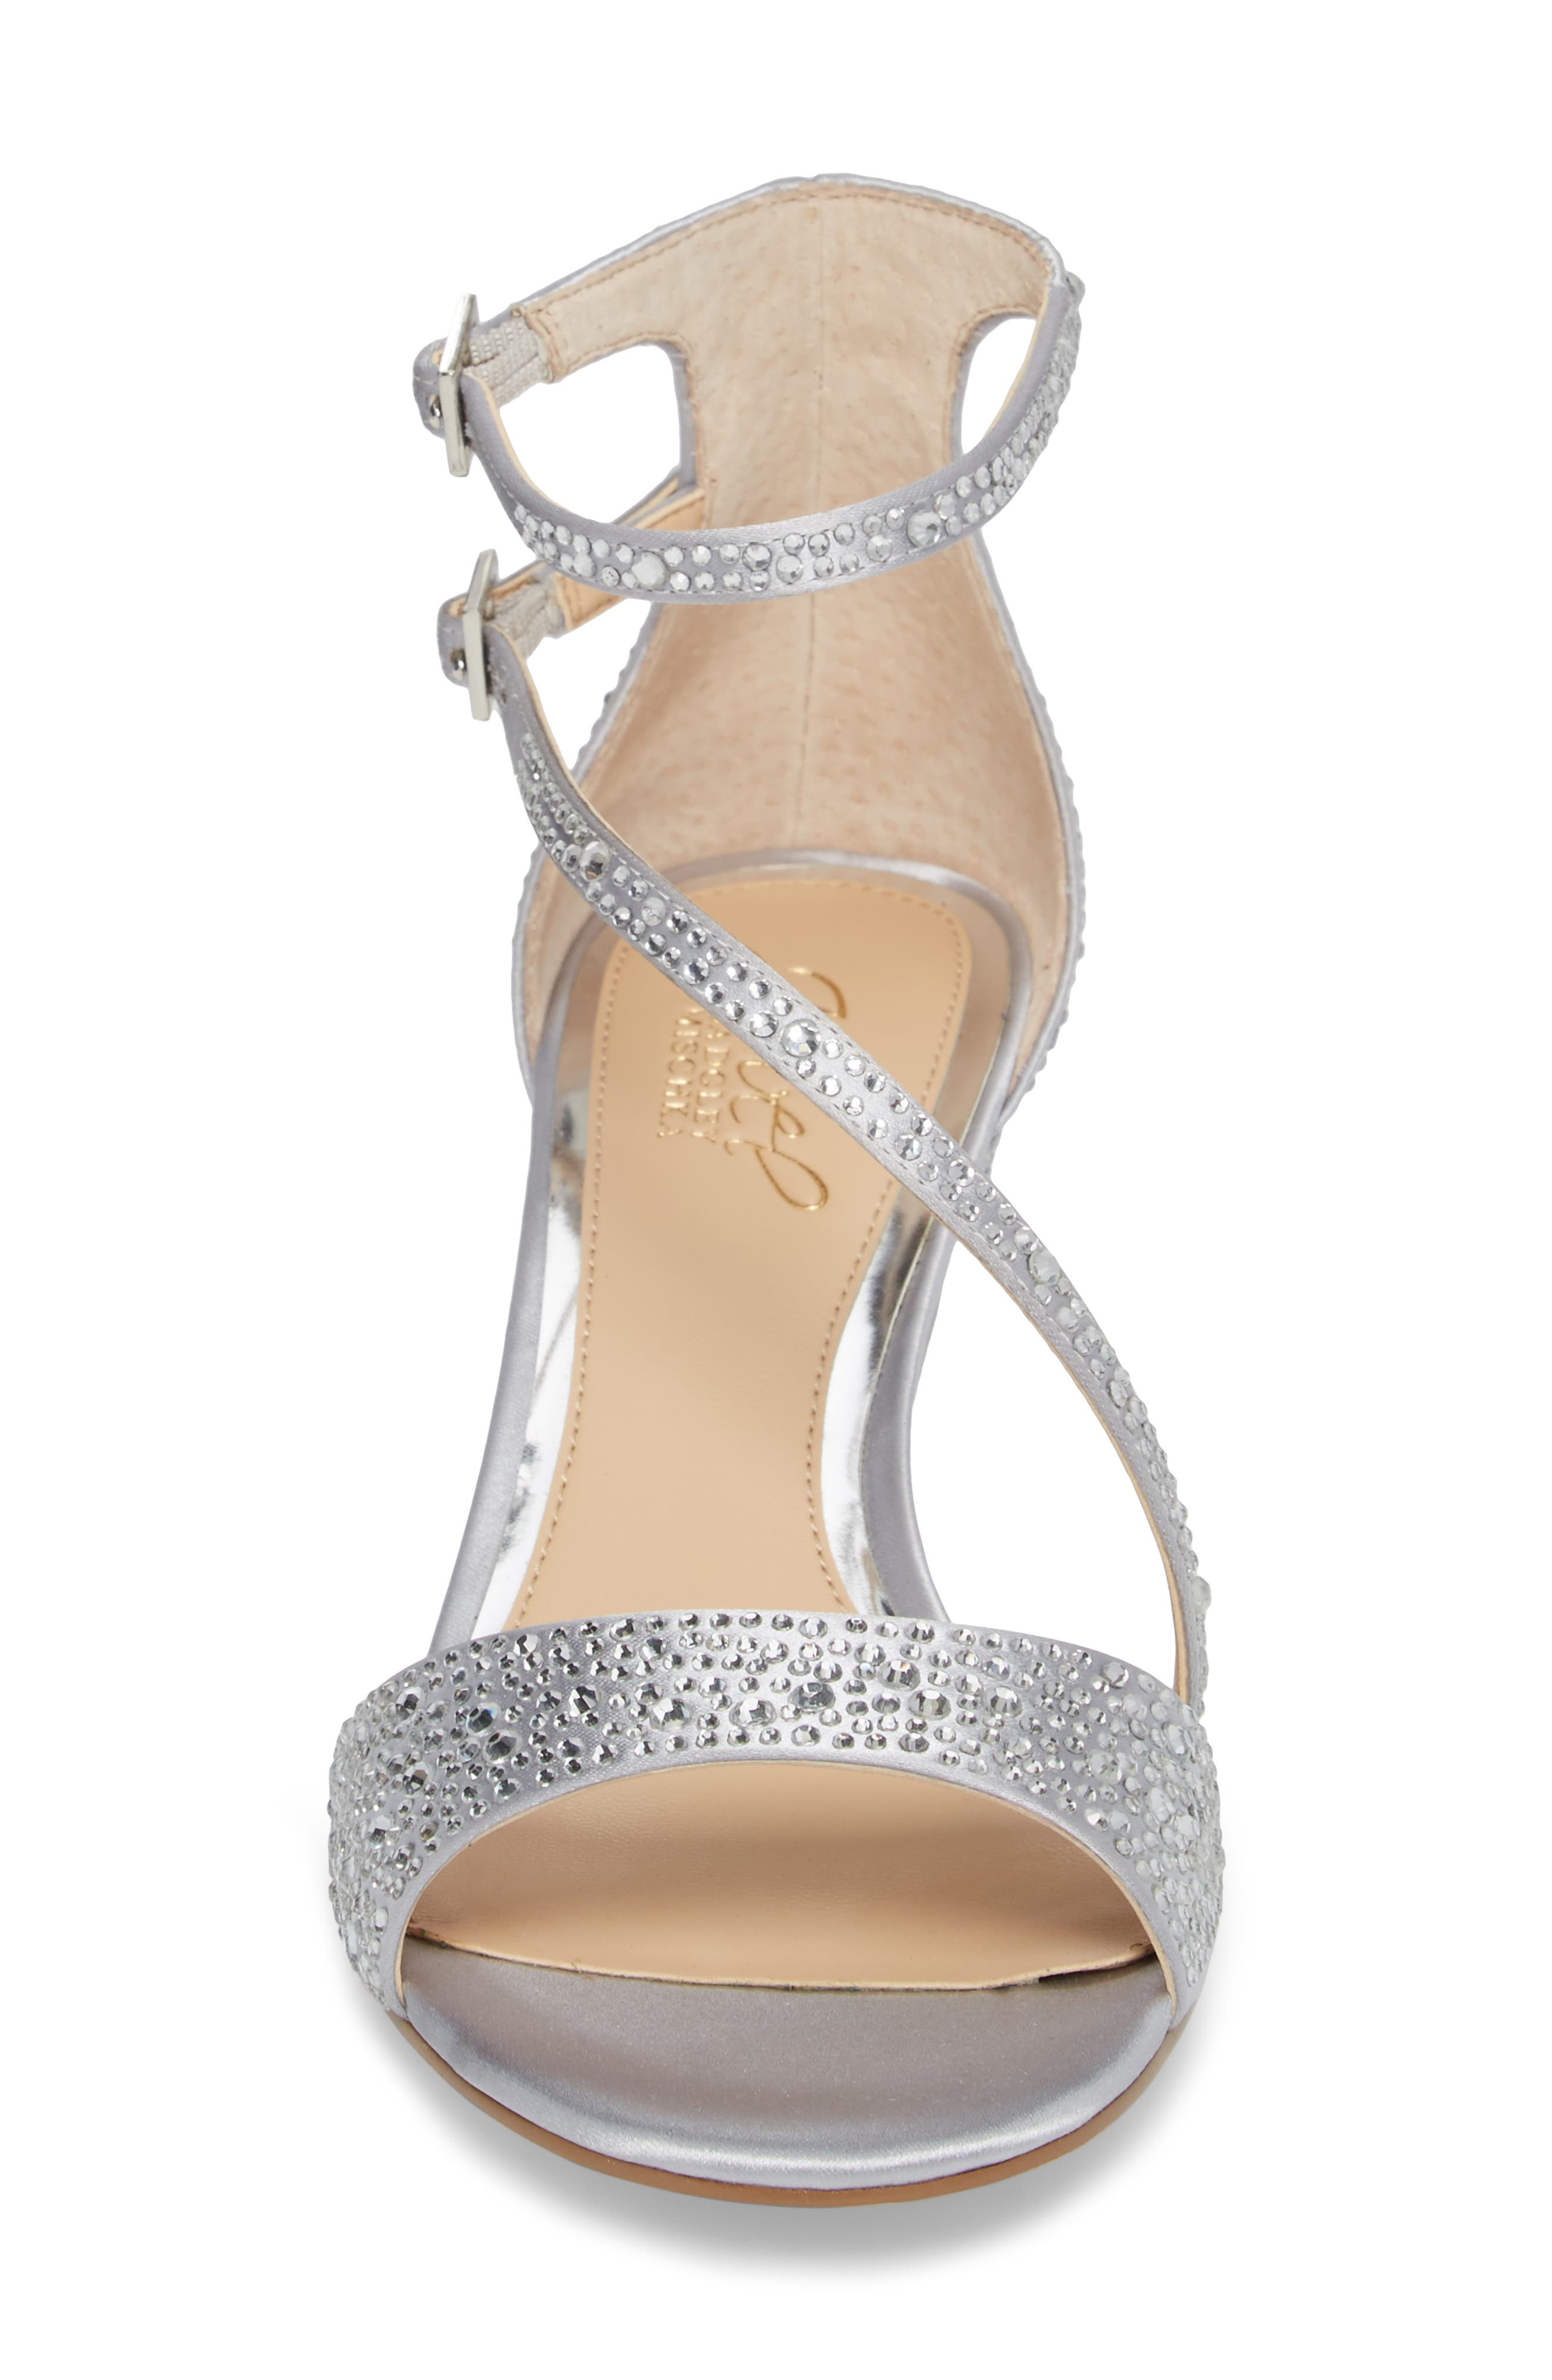 Tangerine Crystal Embellished Sandal,                             Alternate thumbnail 4, color,                             Silver Satin